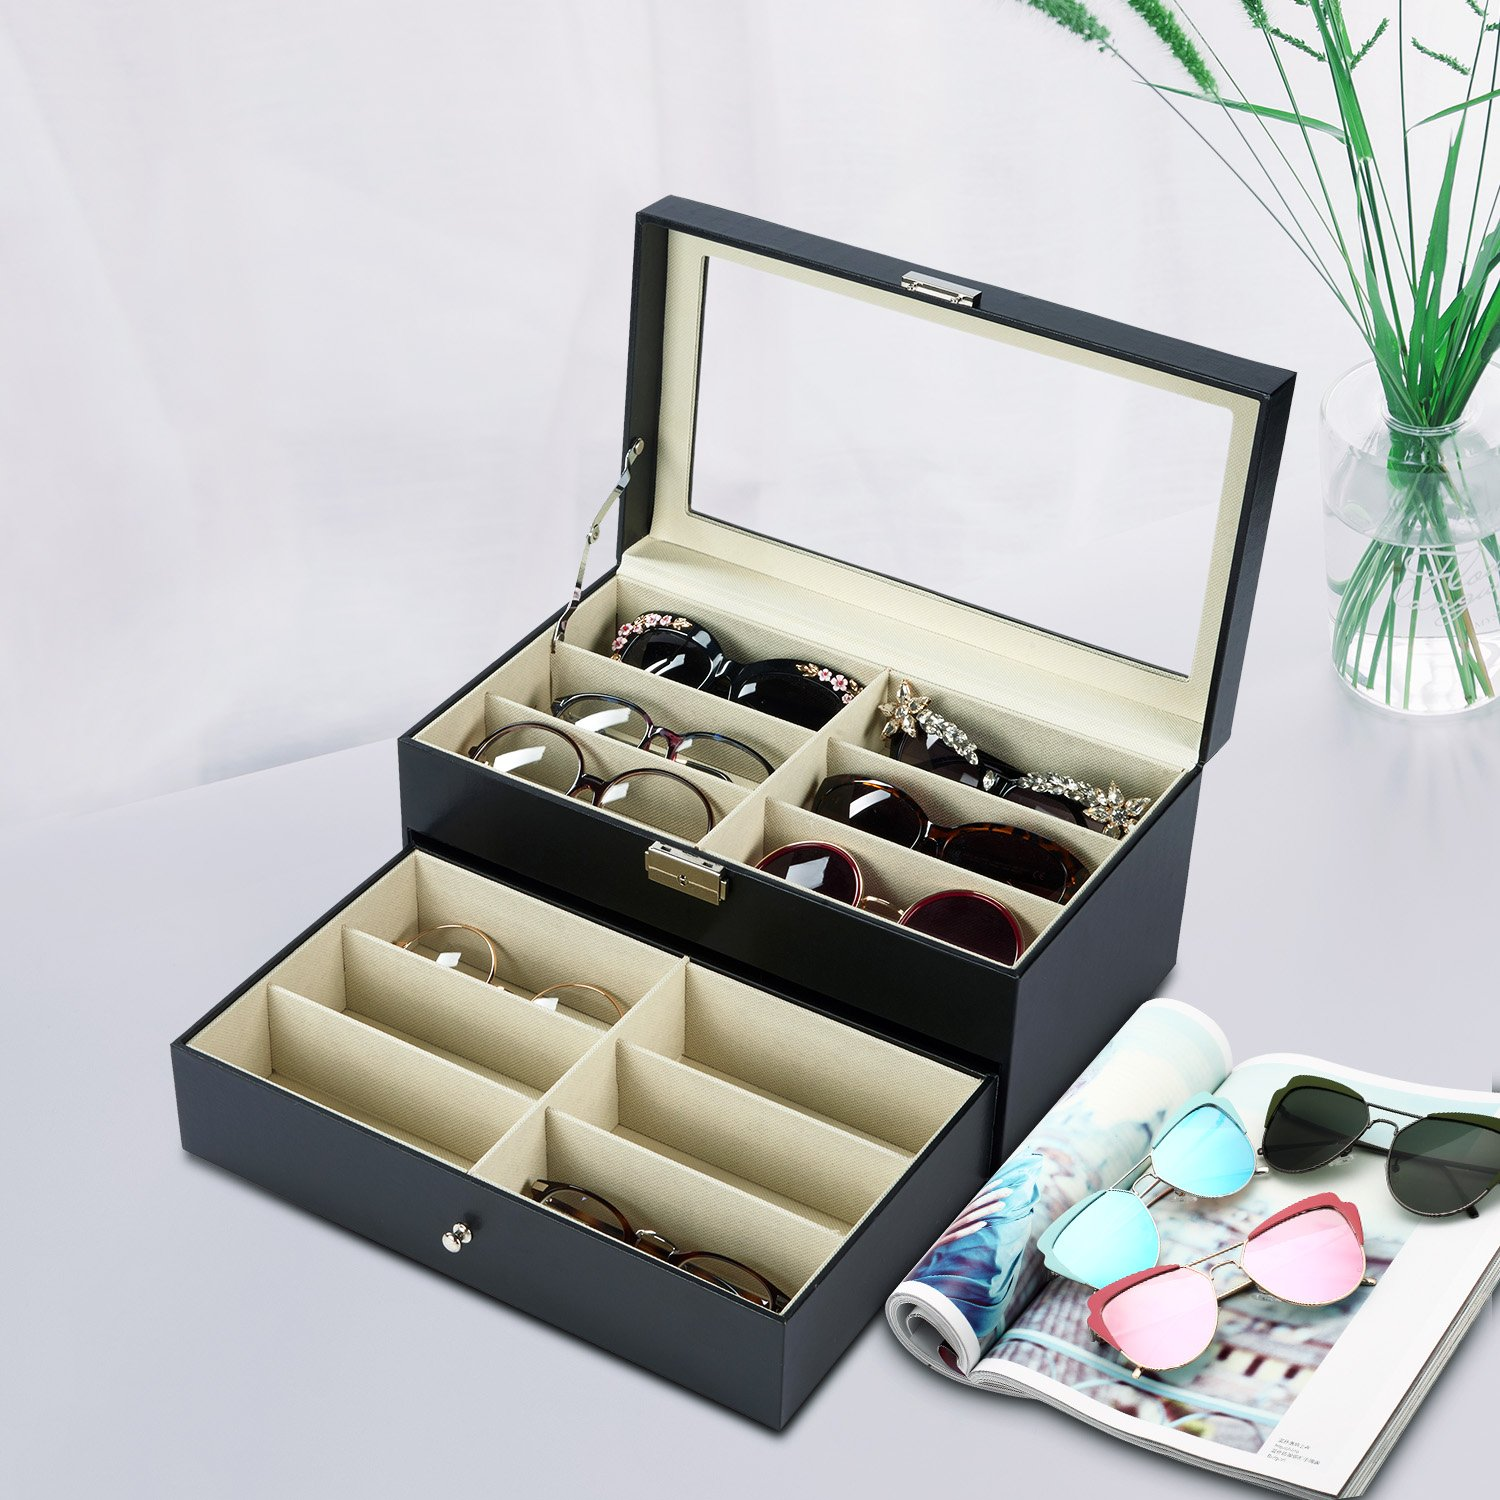 e3db95c21bd Moldiy Sunglasses Display box for Watches and Jewelry